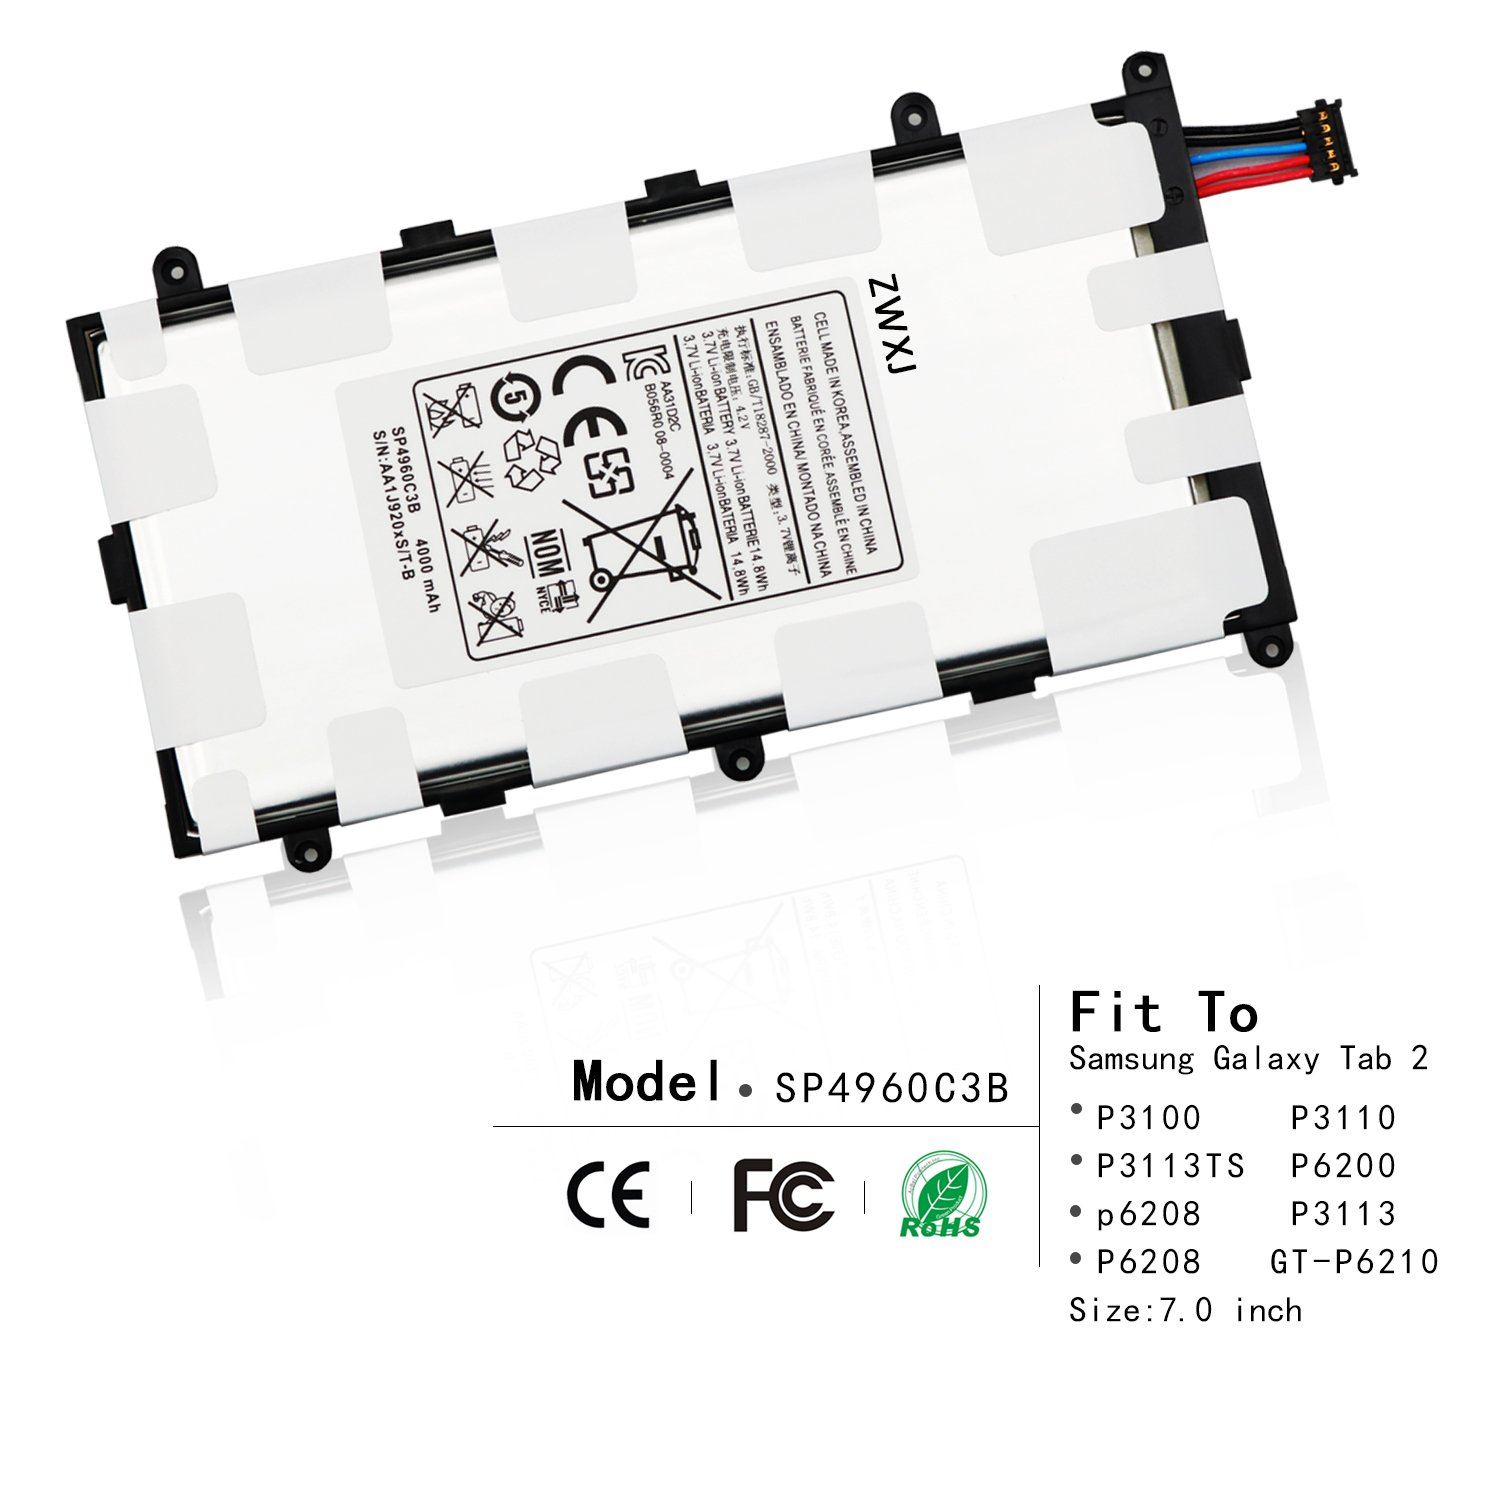 ZWXJ Replacement Tablet SP4960C3B battery(3.7V 4000MAH)For Samsung Galaxy Tab 2 7.0 P3100 P3110 P3113TS P6200 p6208 P3113 P6208 P3100 Plus GT-P6210 Sgh-t869 Aa1c426bs/t-b SP4960C3B